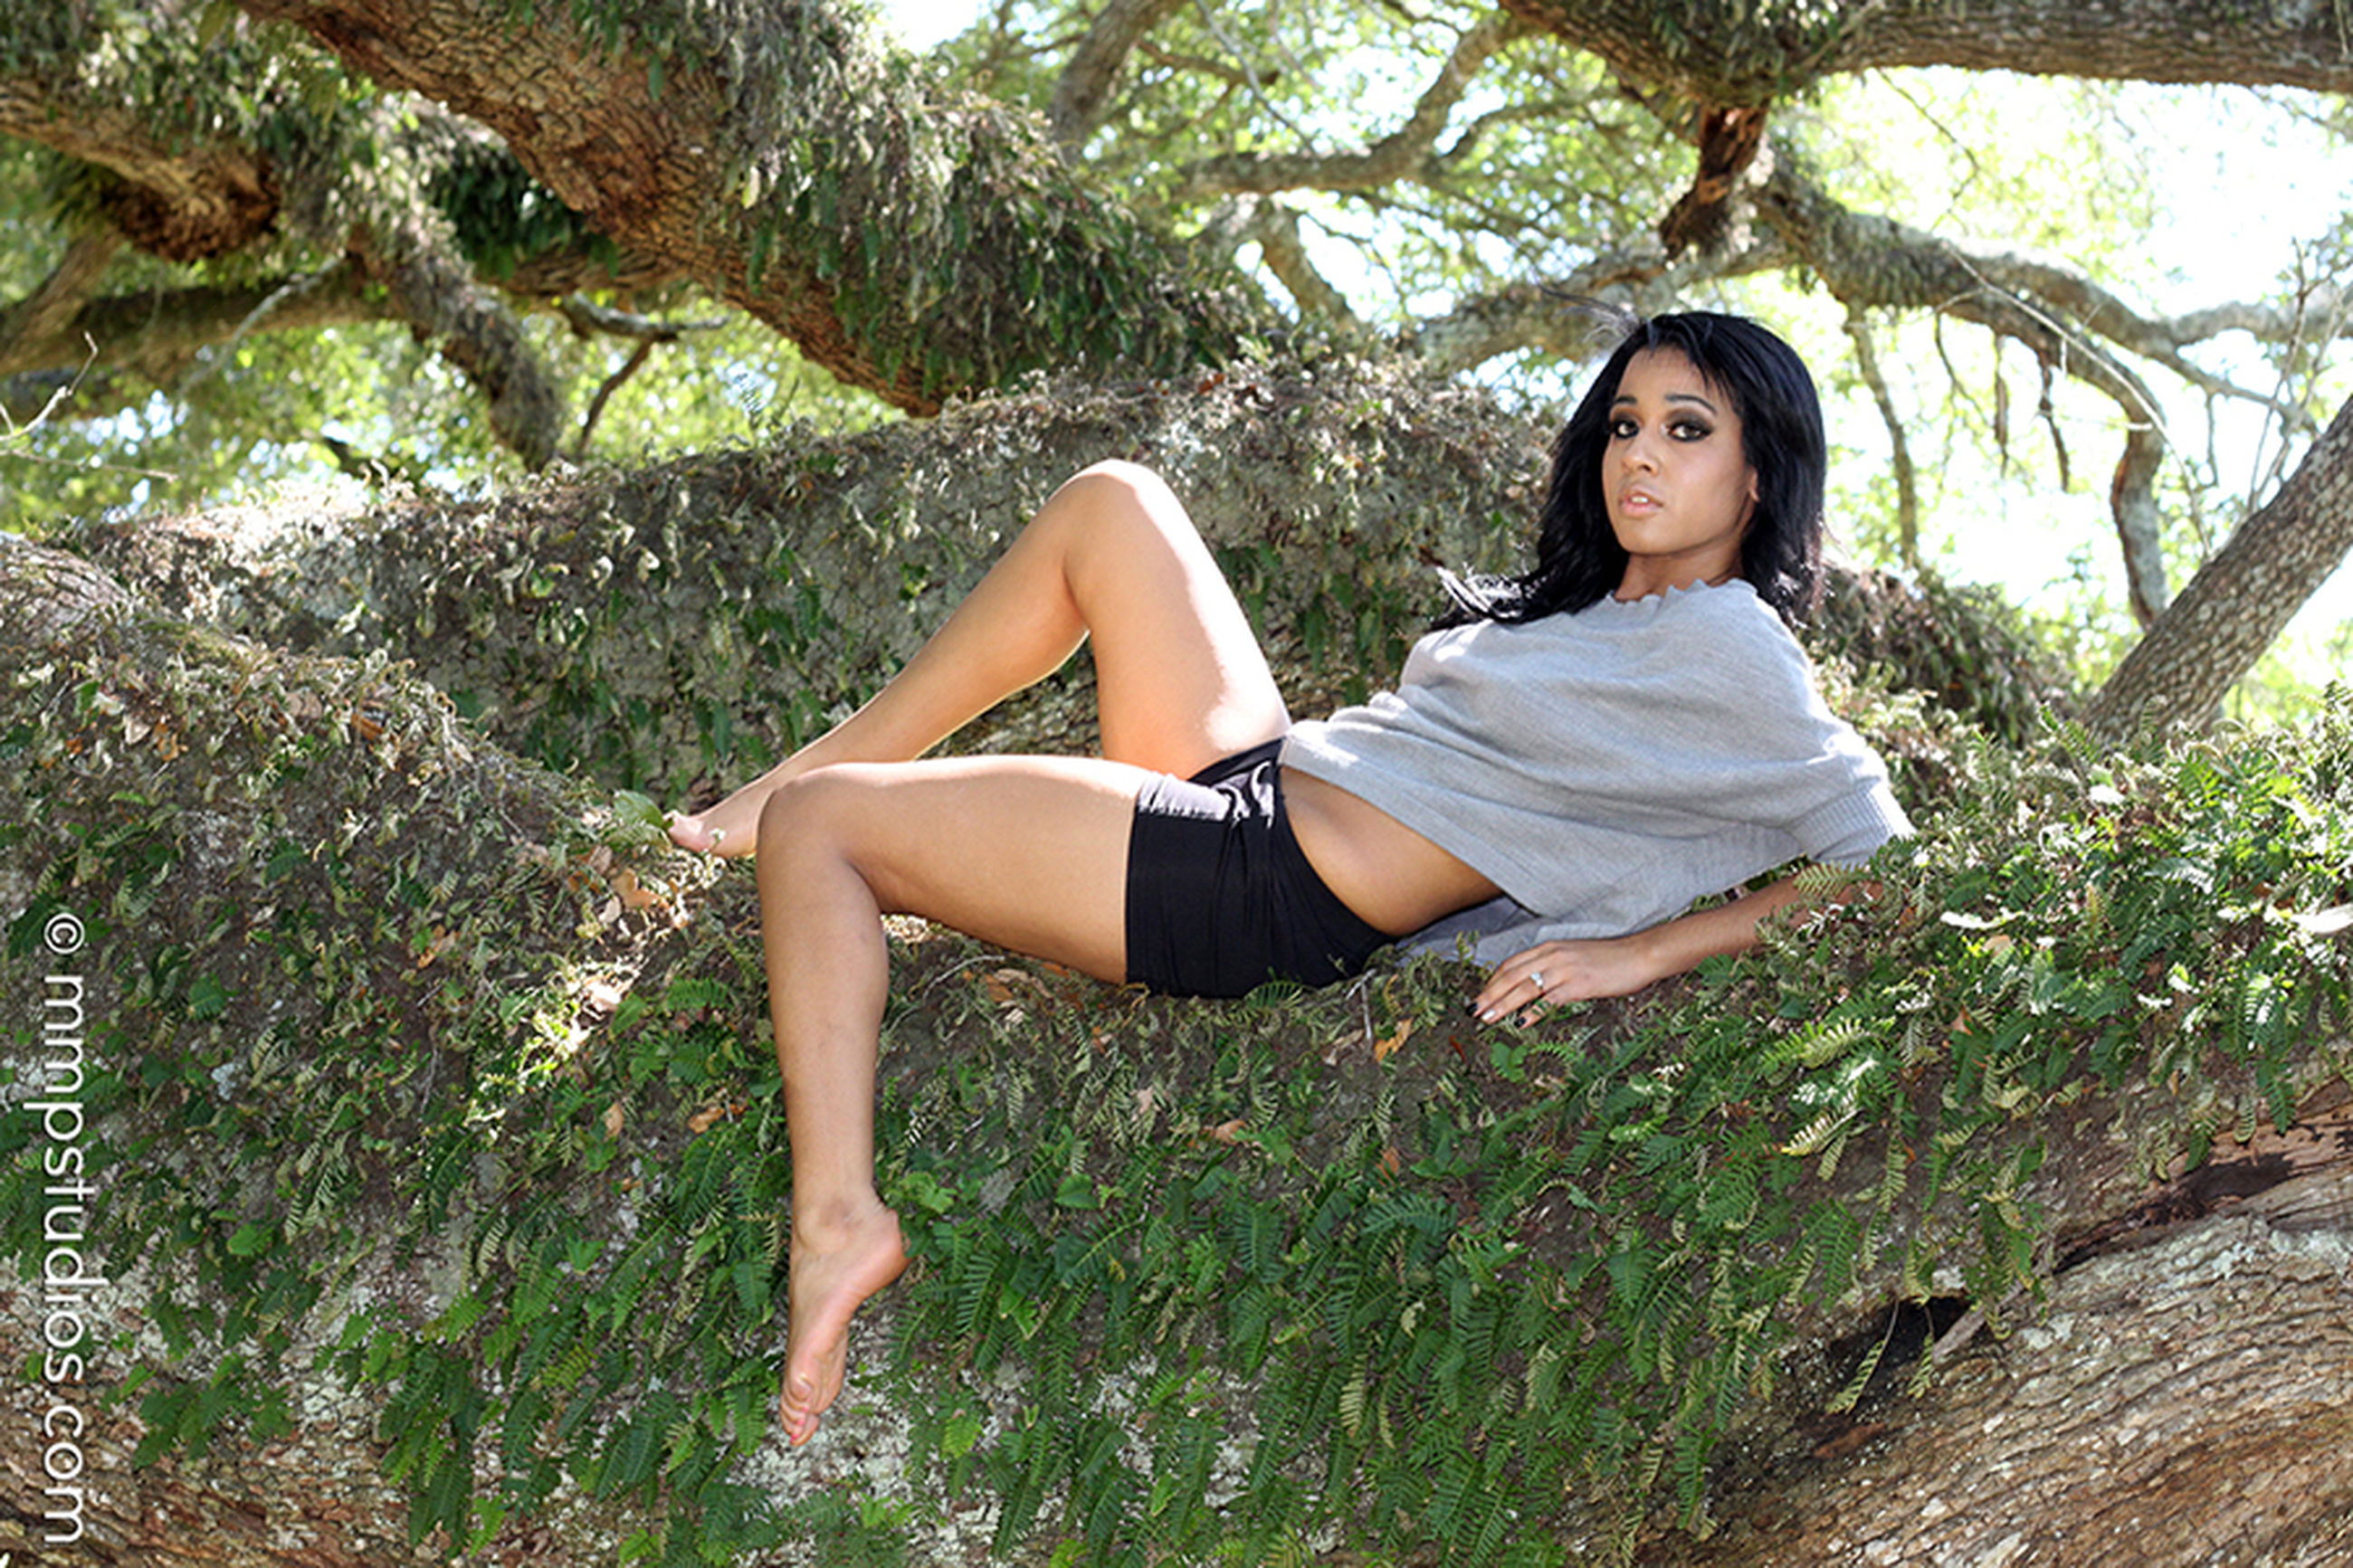 young adult, plant, young women, one person, lifestyles, leisure activity, real people, looking at camera, full length, tree, casual clothing, portrait, nature, day, relaxation, land, growth, hairstyle, hair, beautiful woman, outdoors